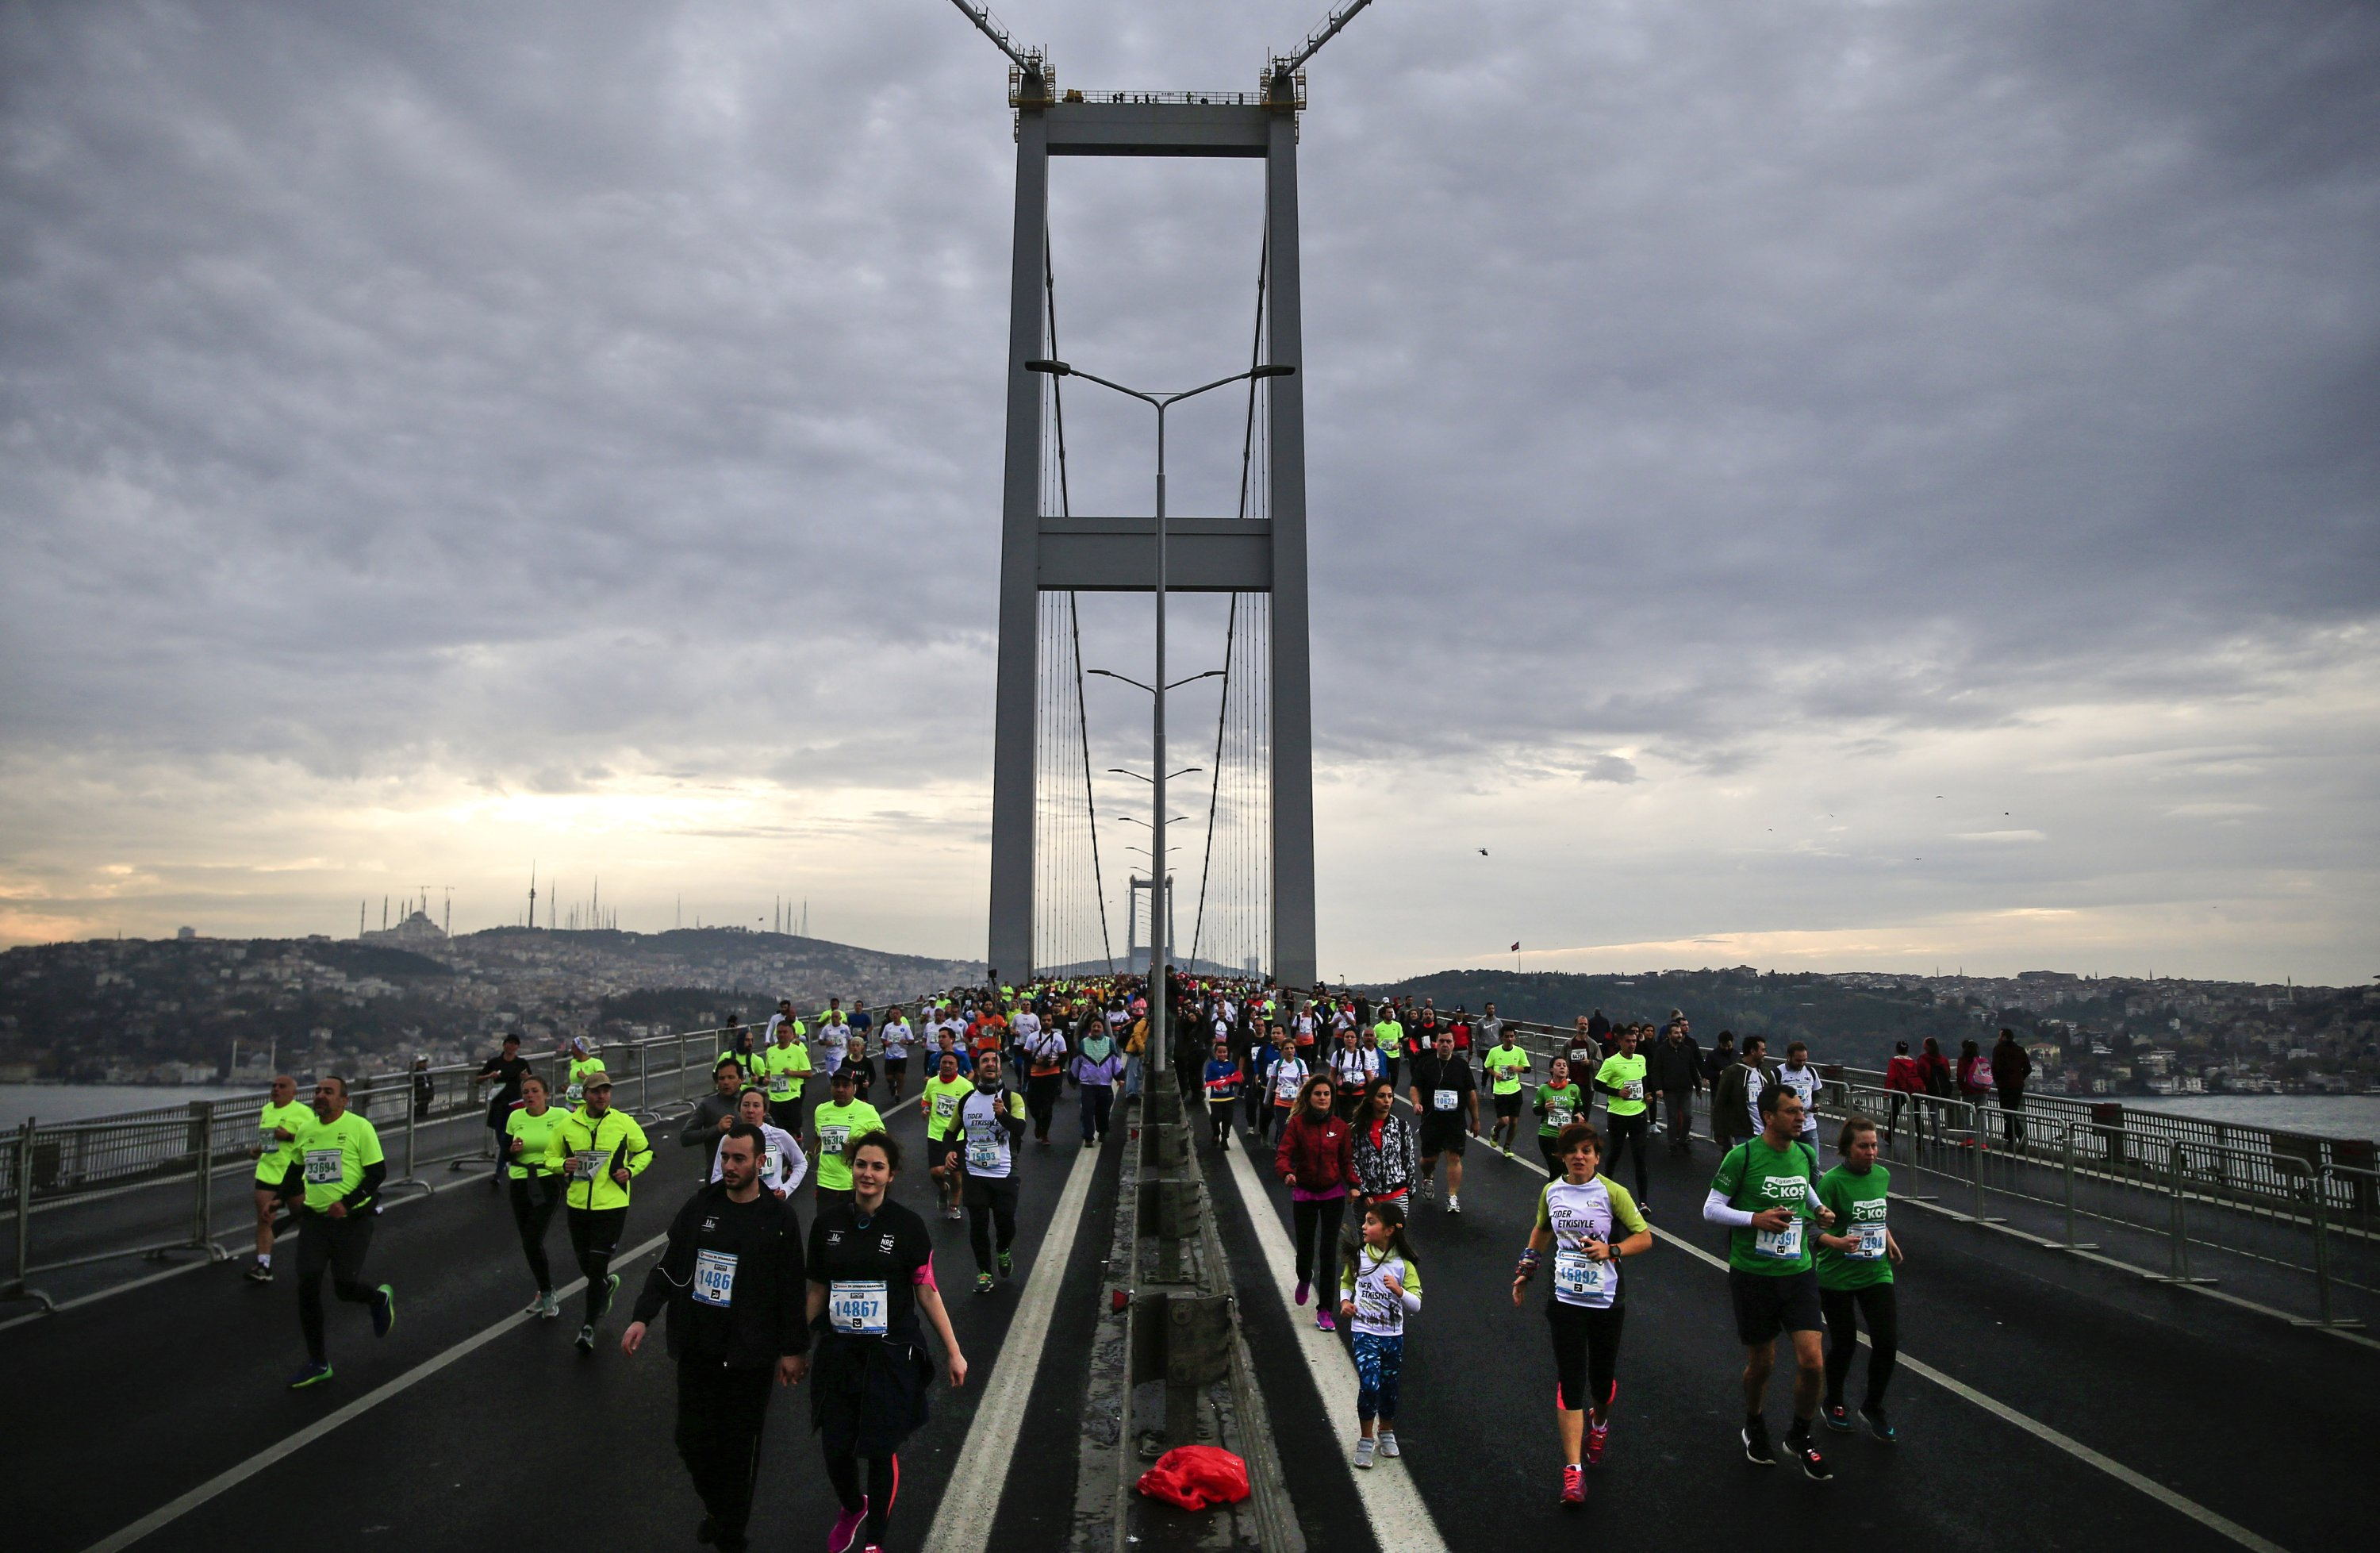 Athletes cross the July 15th Martyrs' Bridge during the Istanbul Marathon between Asia and Europe, on Nov. 12, 2017. (AP Photo)